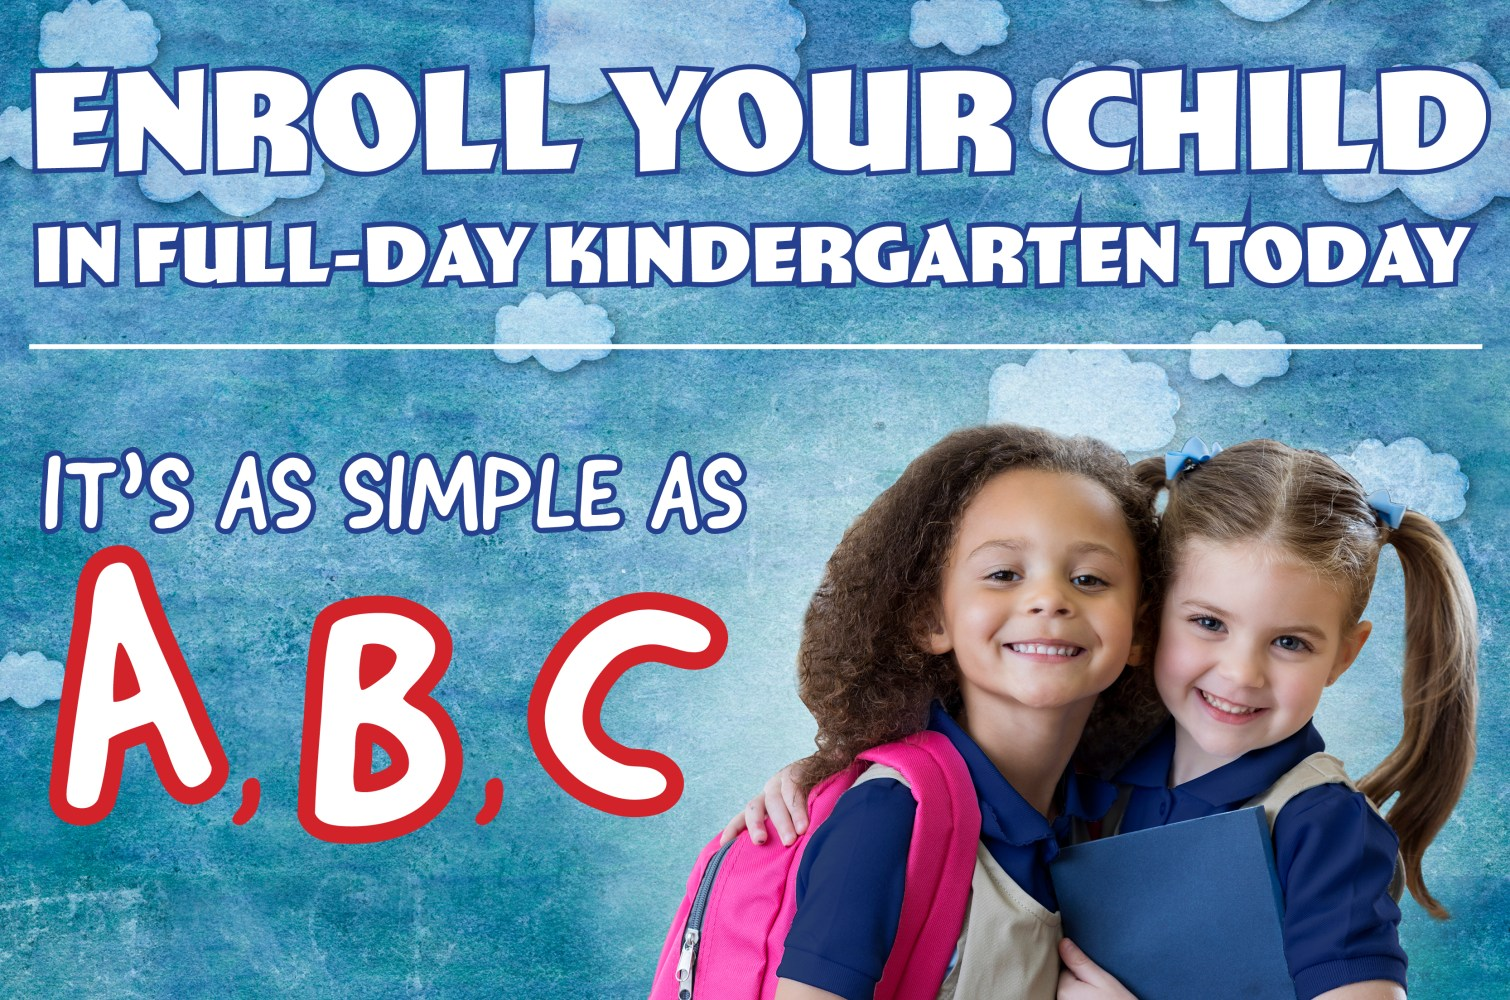 Enroll Your Child in Full-Day Kindergarten